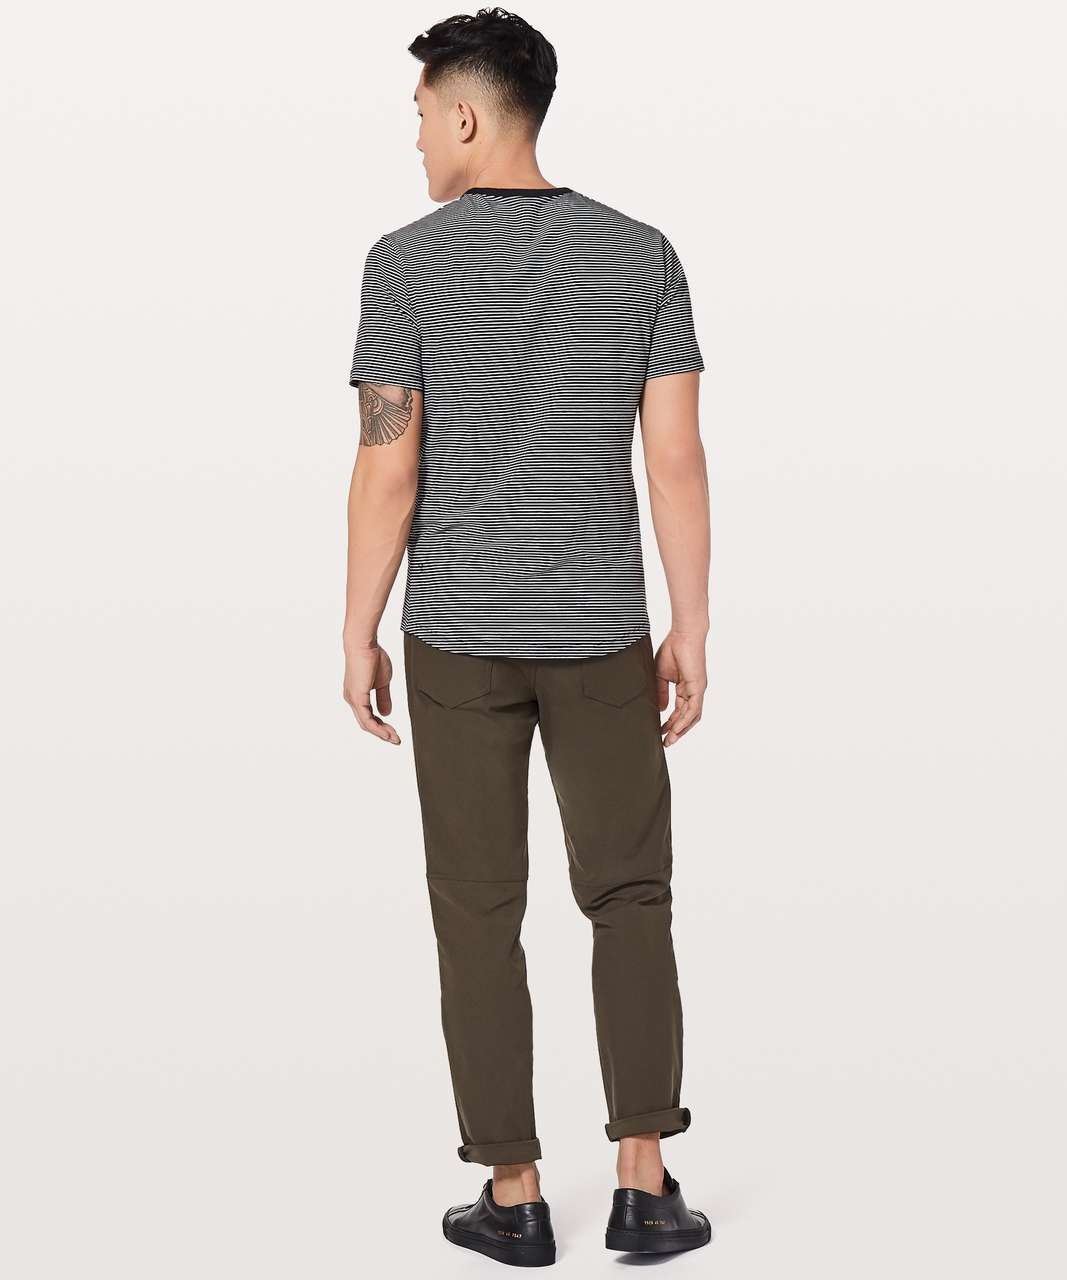 6f41a30bf30a2 Lululemon 5 Year Basic Tee  Updated Fit - Hyper Stripe Black   White ...